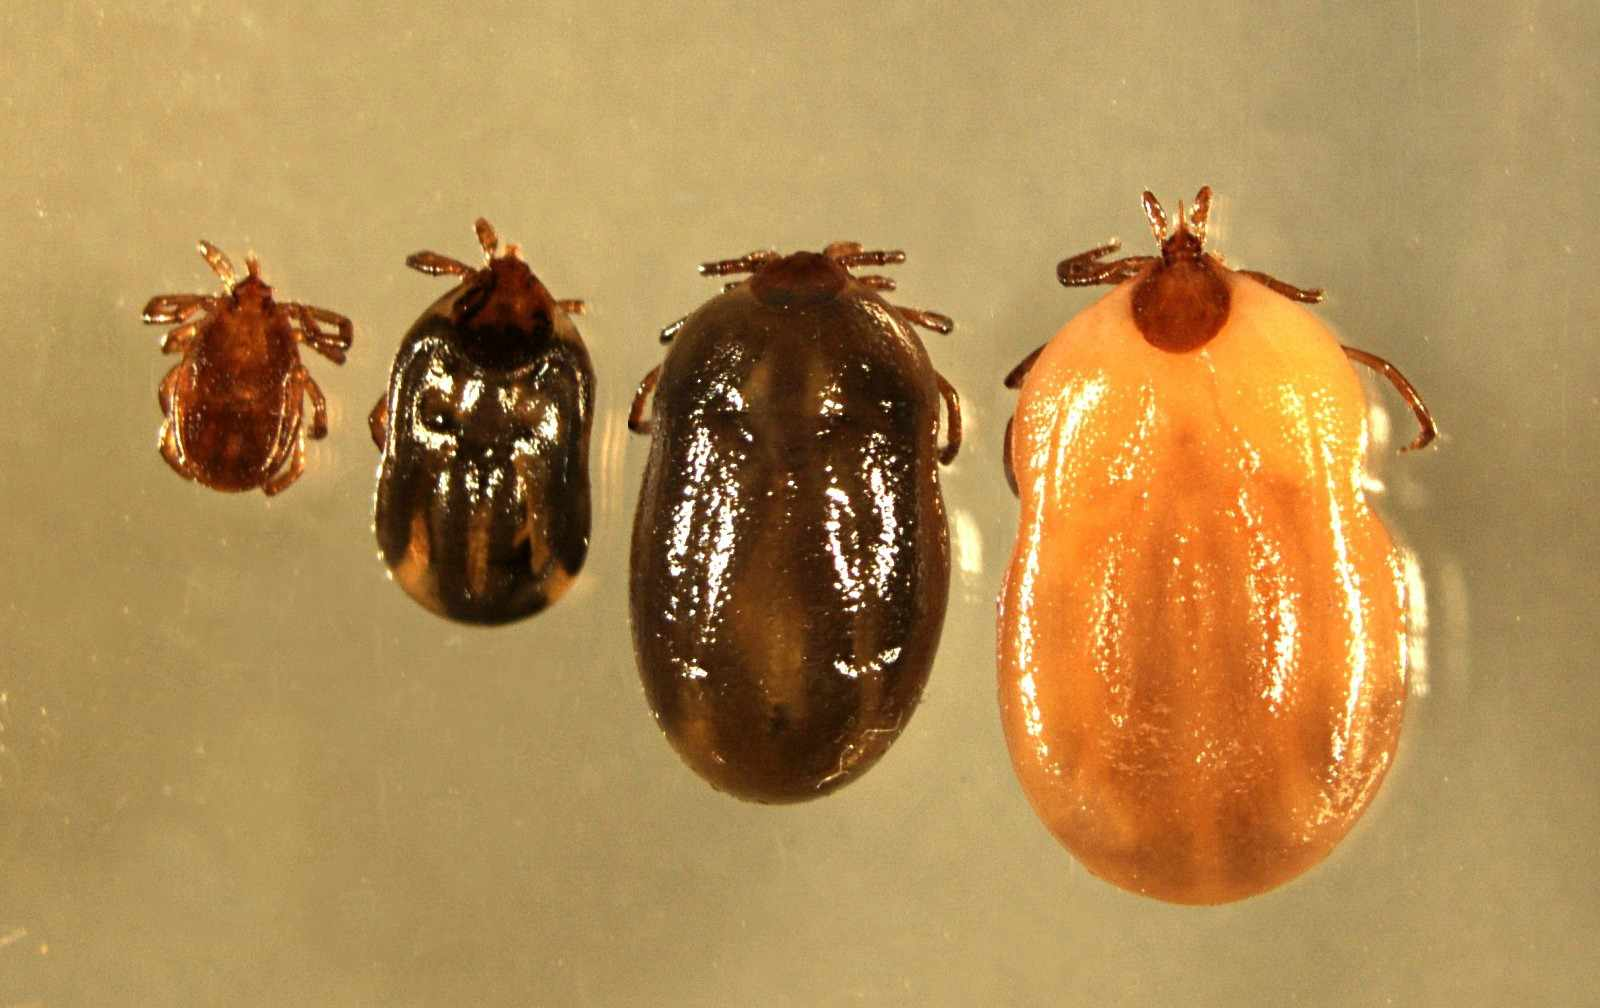 wood tick showing degree of engorgement